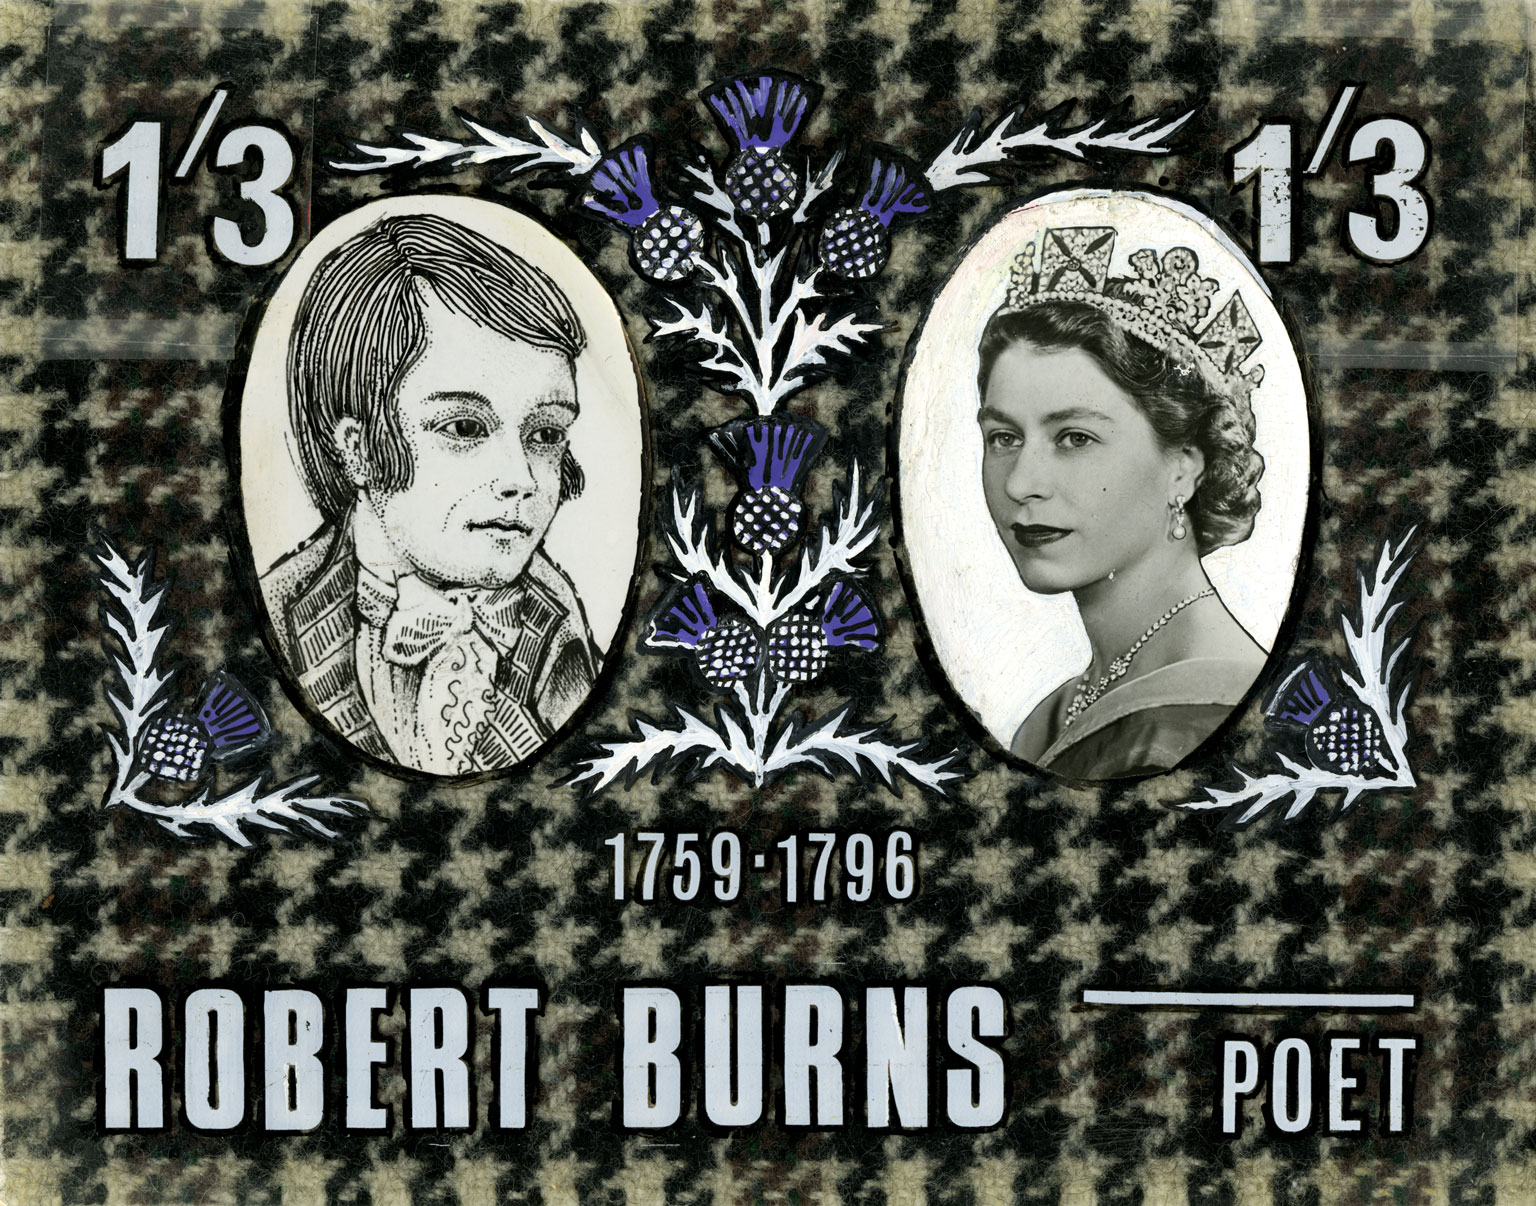 A stamp design featuring a portrait of Robert Burns and Queen Elizabeth II on a tartan background.